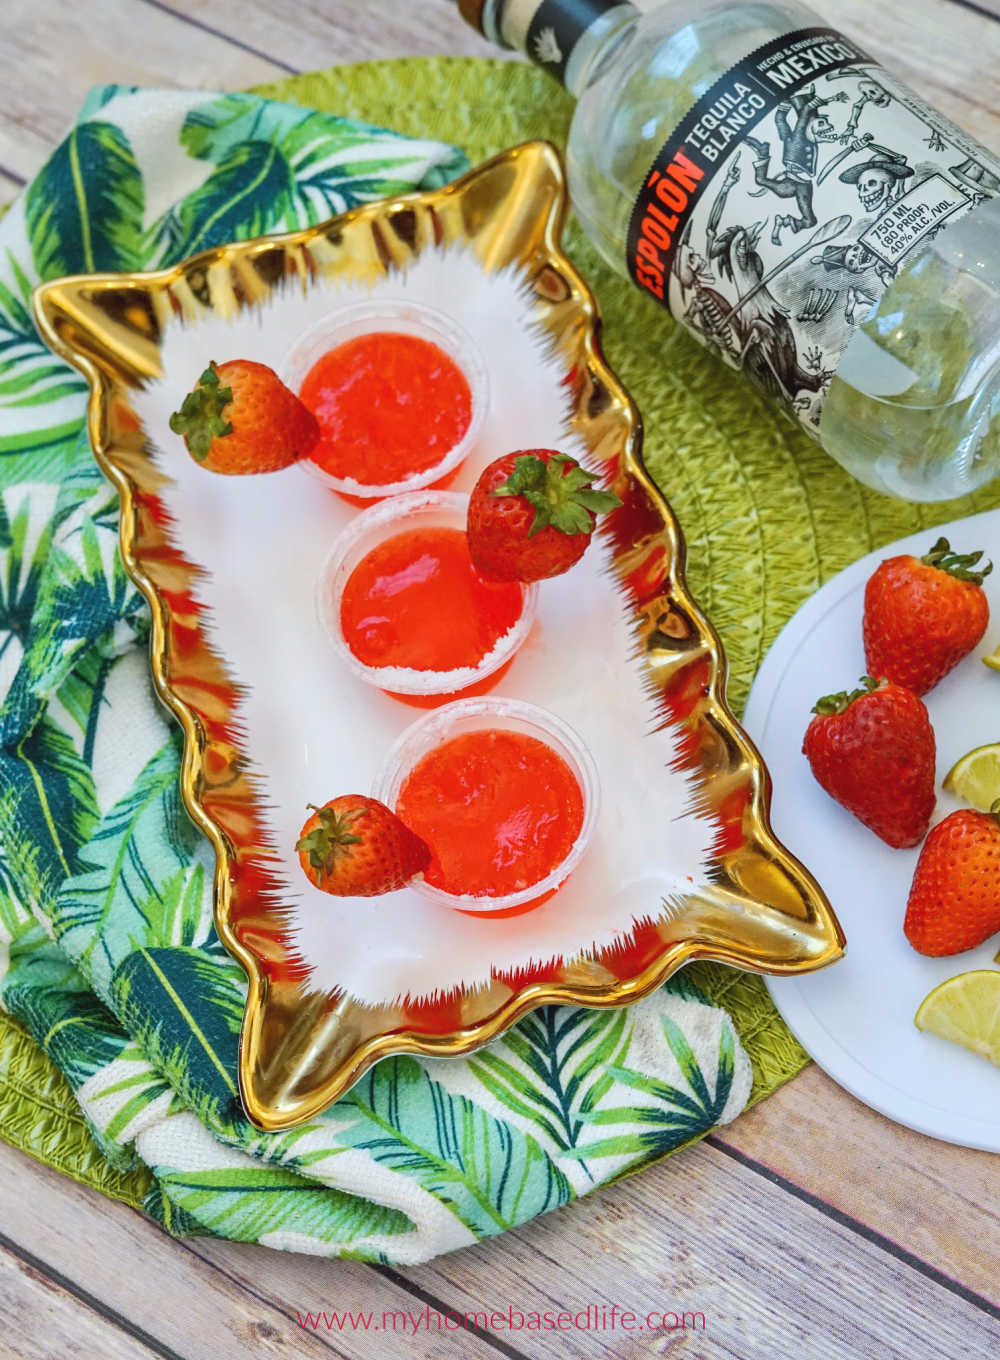 Strawberry Margarita Jello Shots My Home Based Life